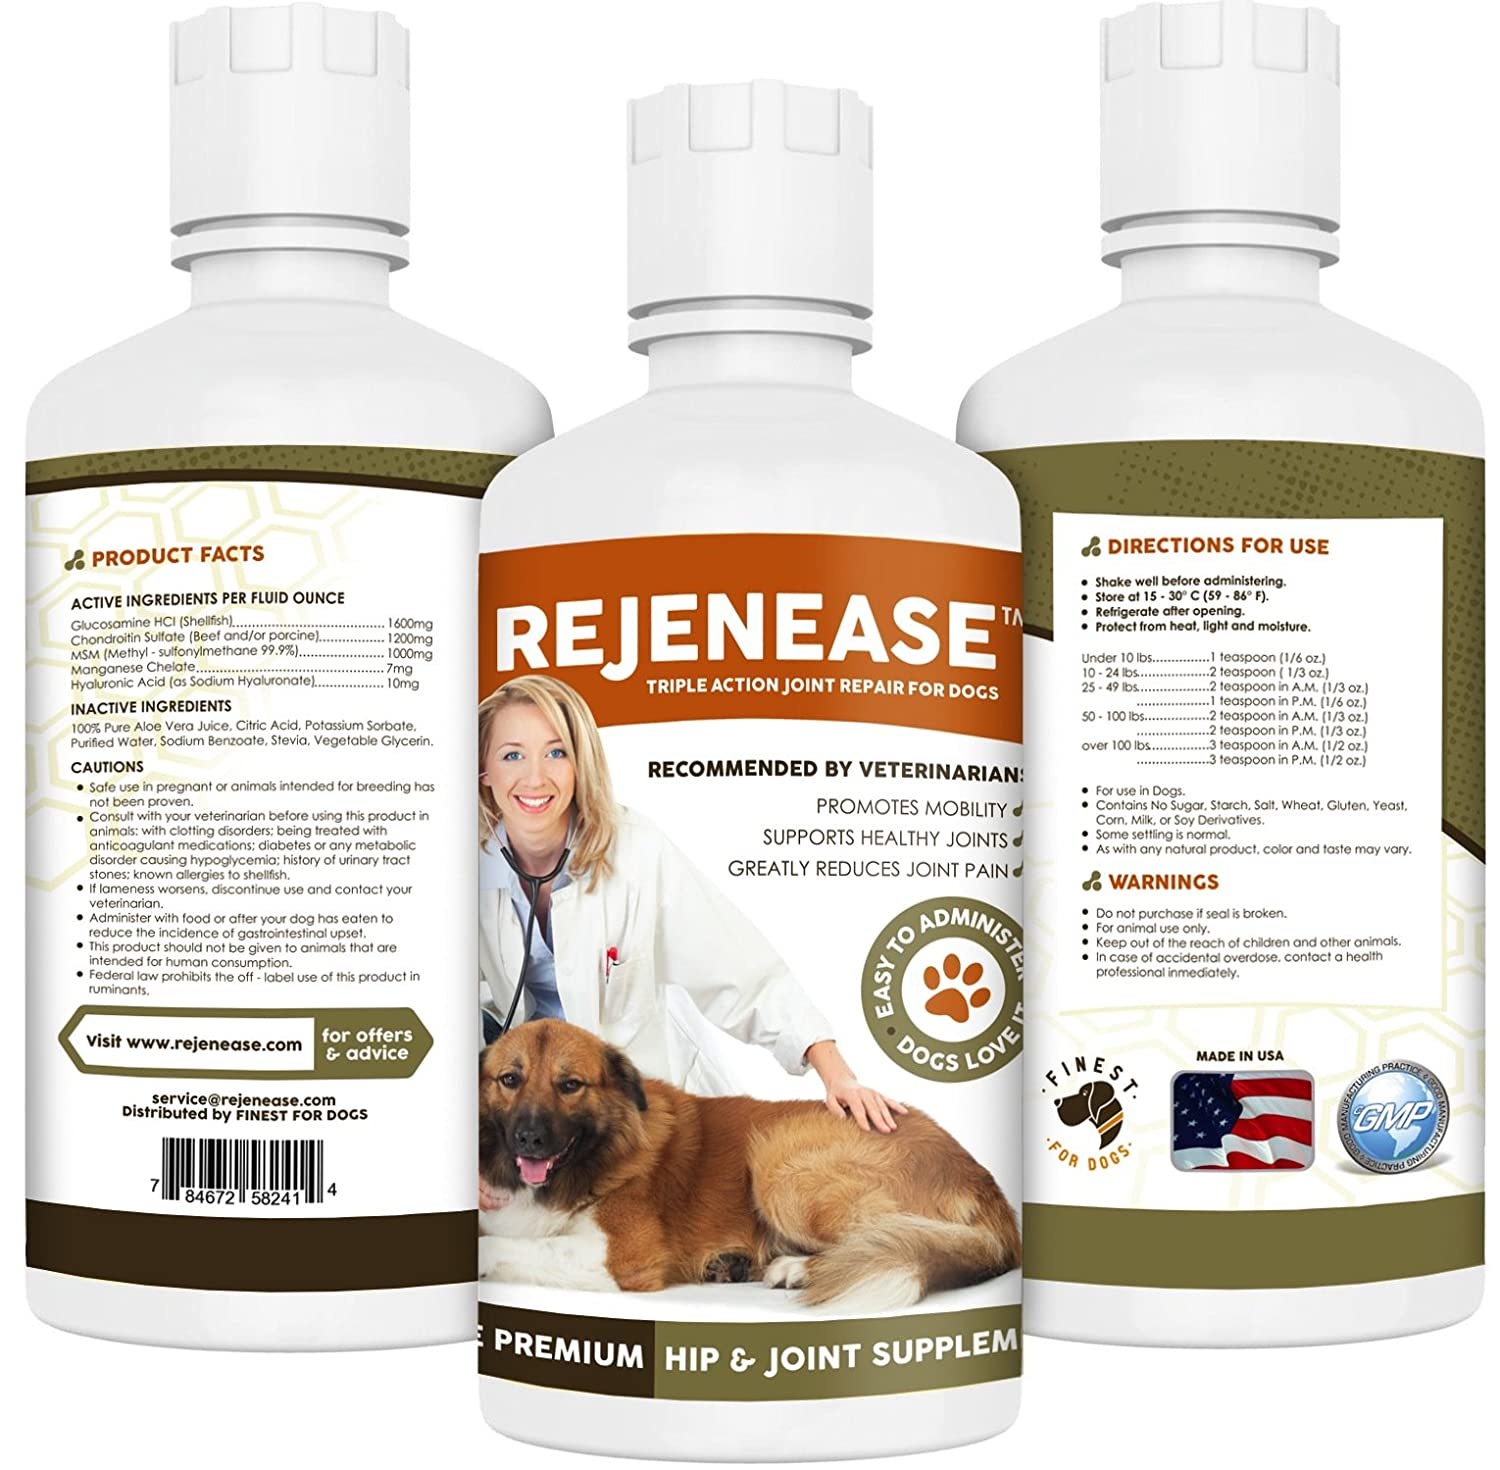 Glucosamine for Dogs - Hip and Joint Supplement for Maximum Mobility, Pain Relief and Joint Health for Dogs. All Natural Liquid Glucosamine, Chondroitin & MSM. Large 32 Oz Bottle. Made in USA. Results in 30 Days or Your Money Back. glucosamine for dogs hip and joint supplement for maximum mobility pain relief and joint health for dogs all natural liquid glucosamine chondroitin